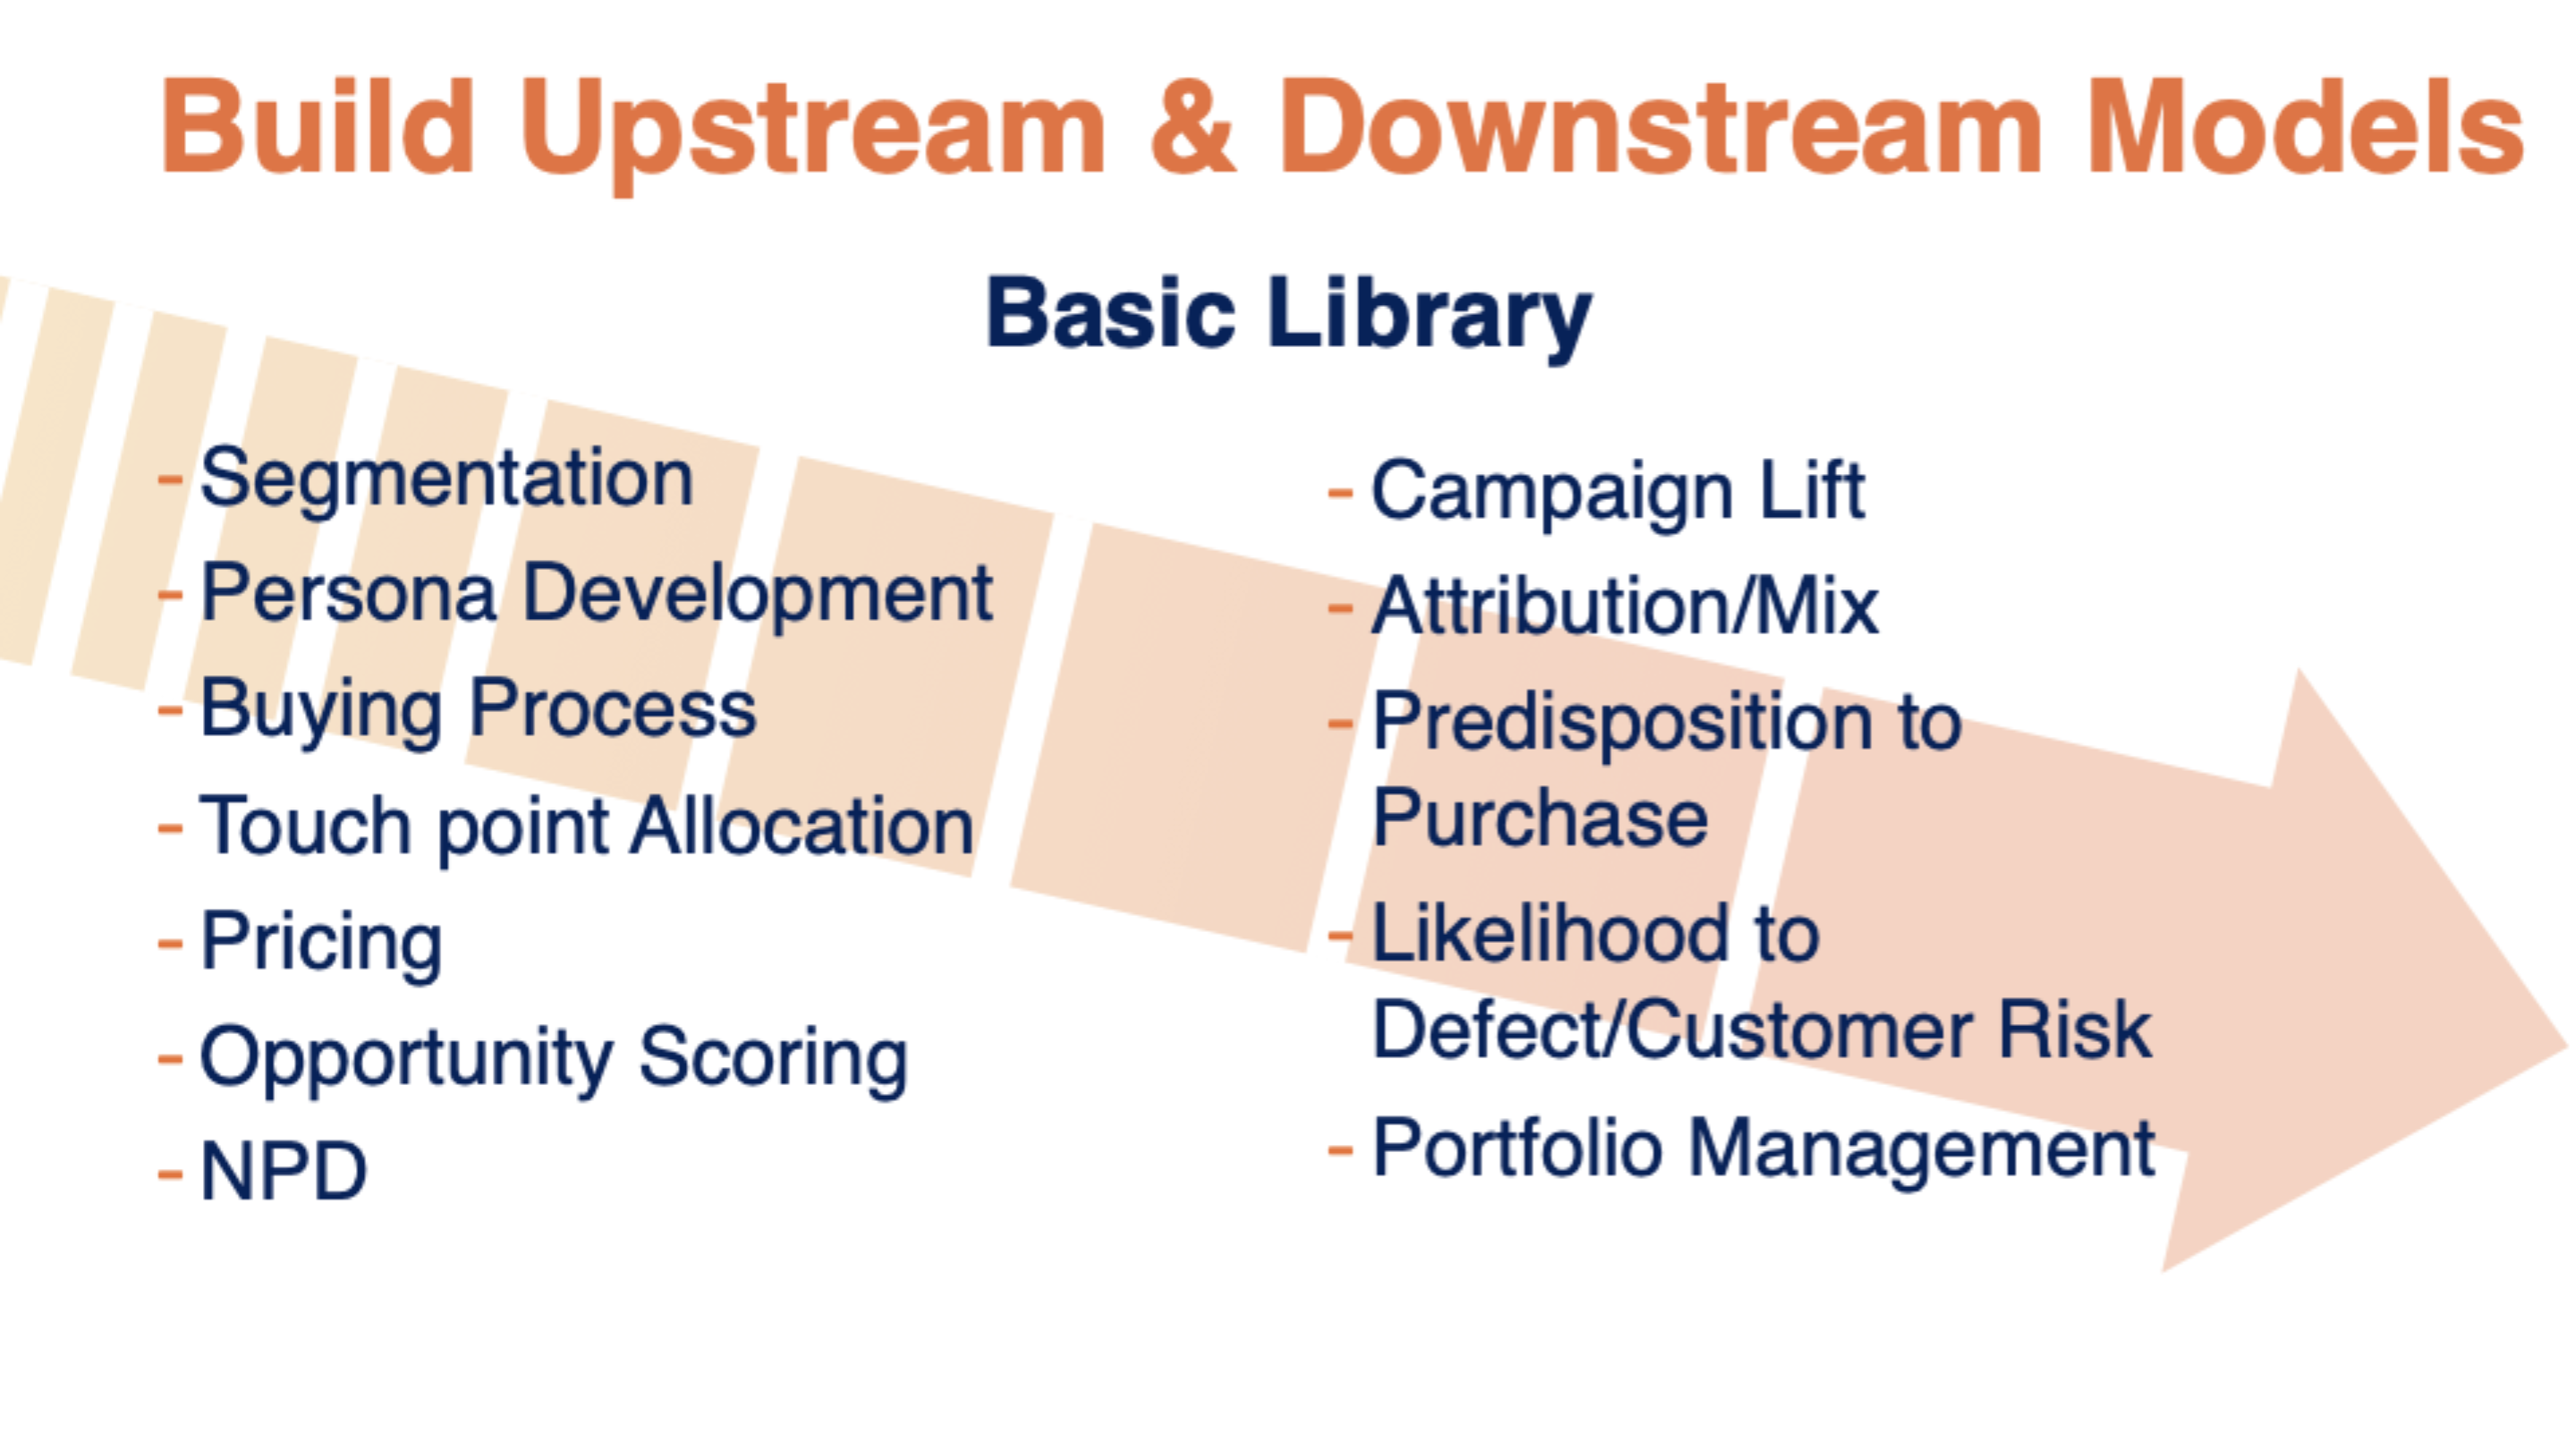 build upstream and downstream models